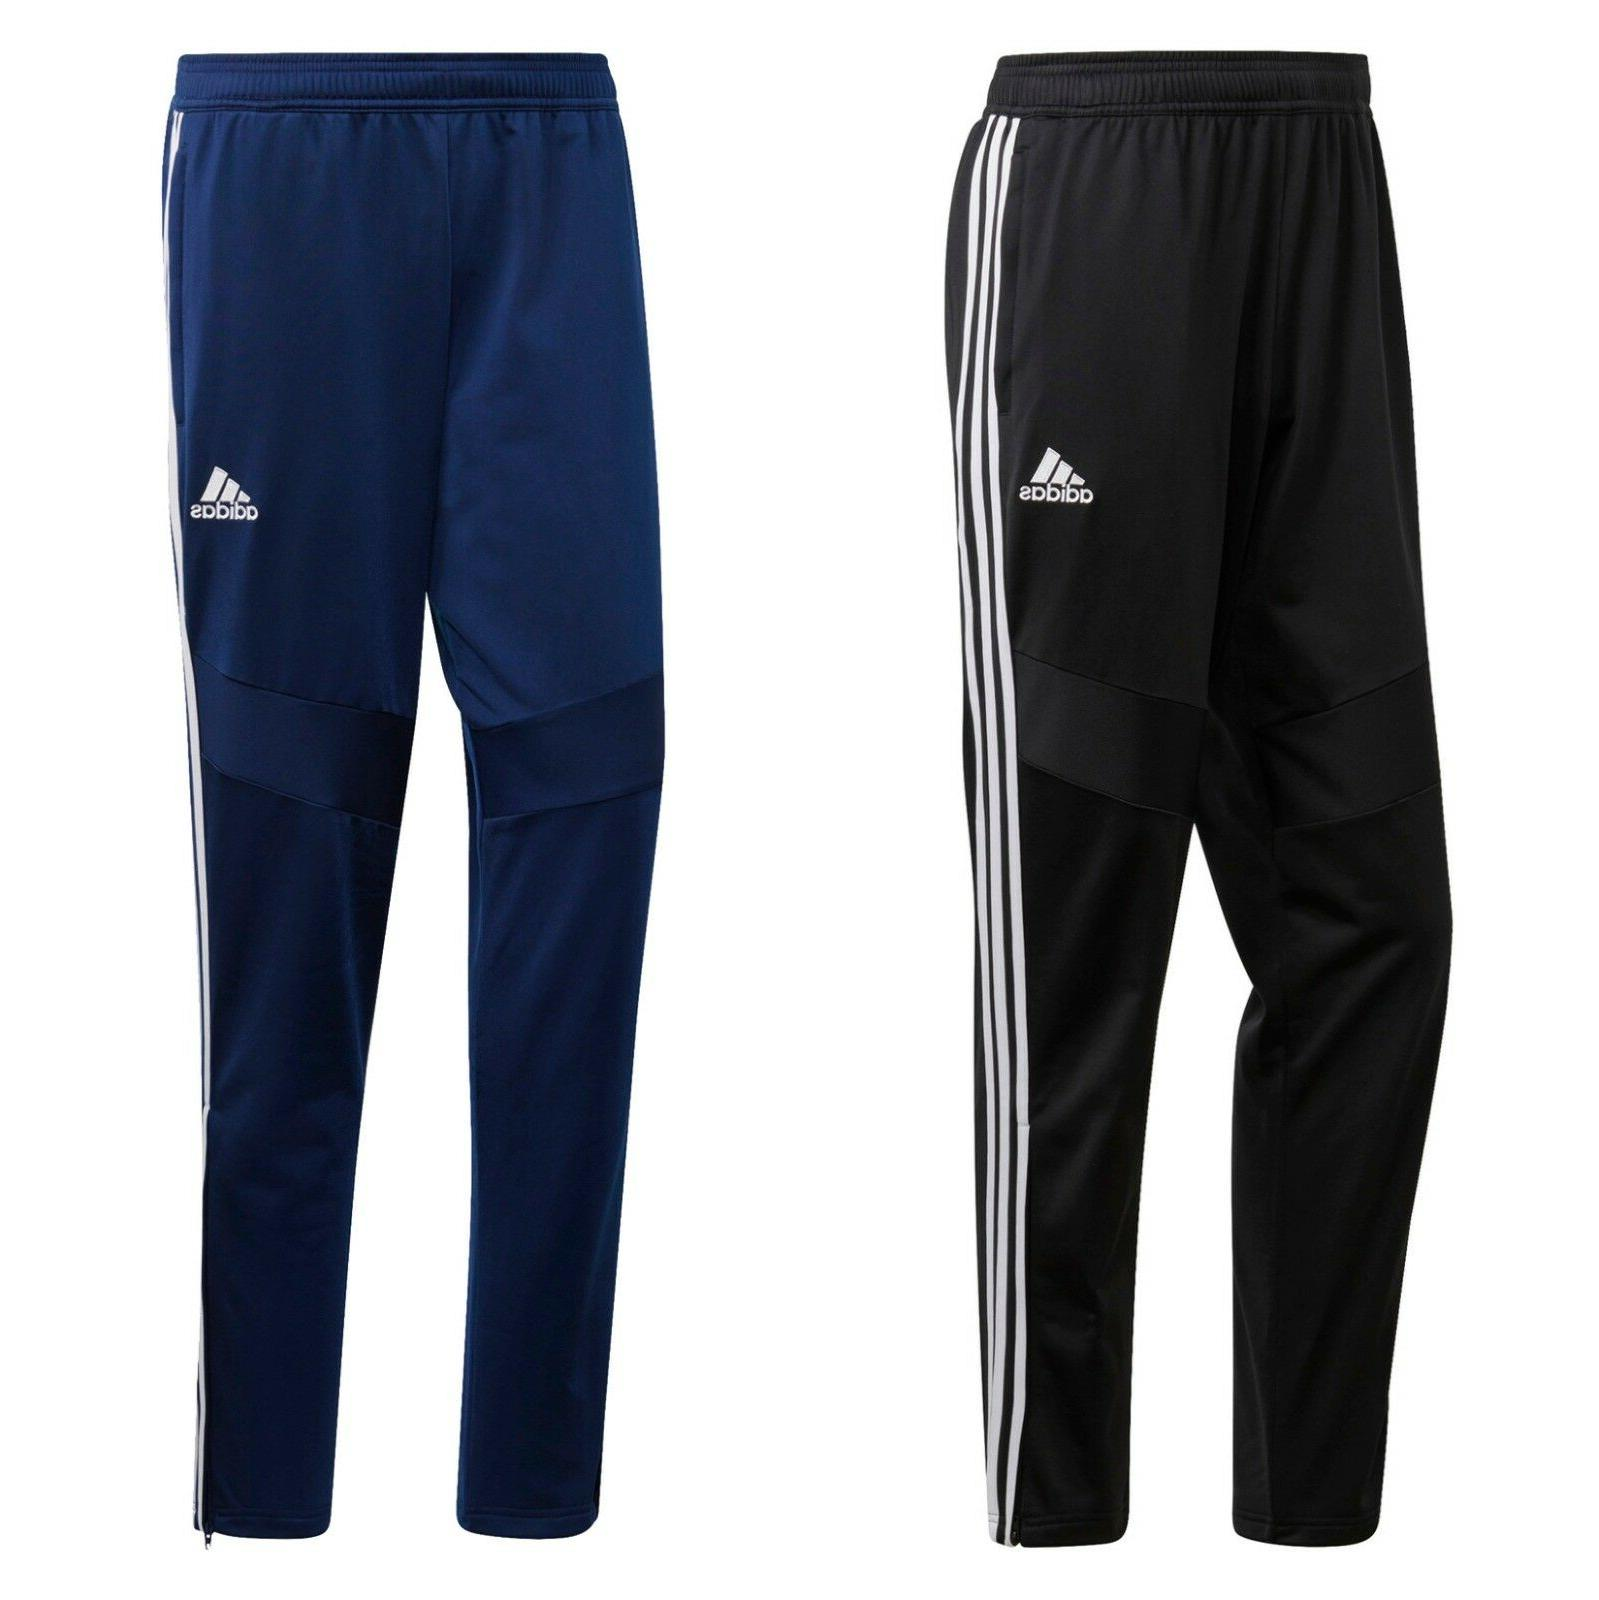 ADIDAS BOTTOMS Mens TIRO 19 Small Medium XXL